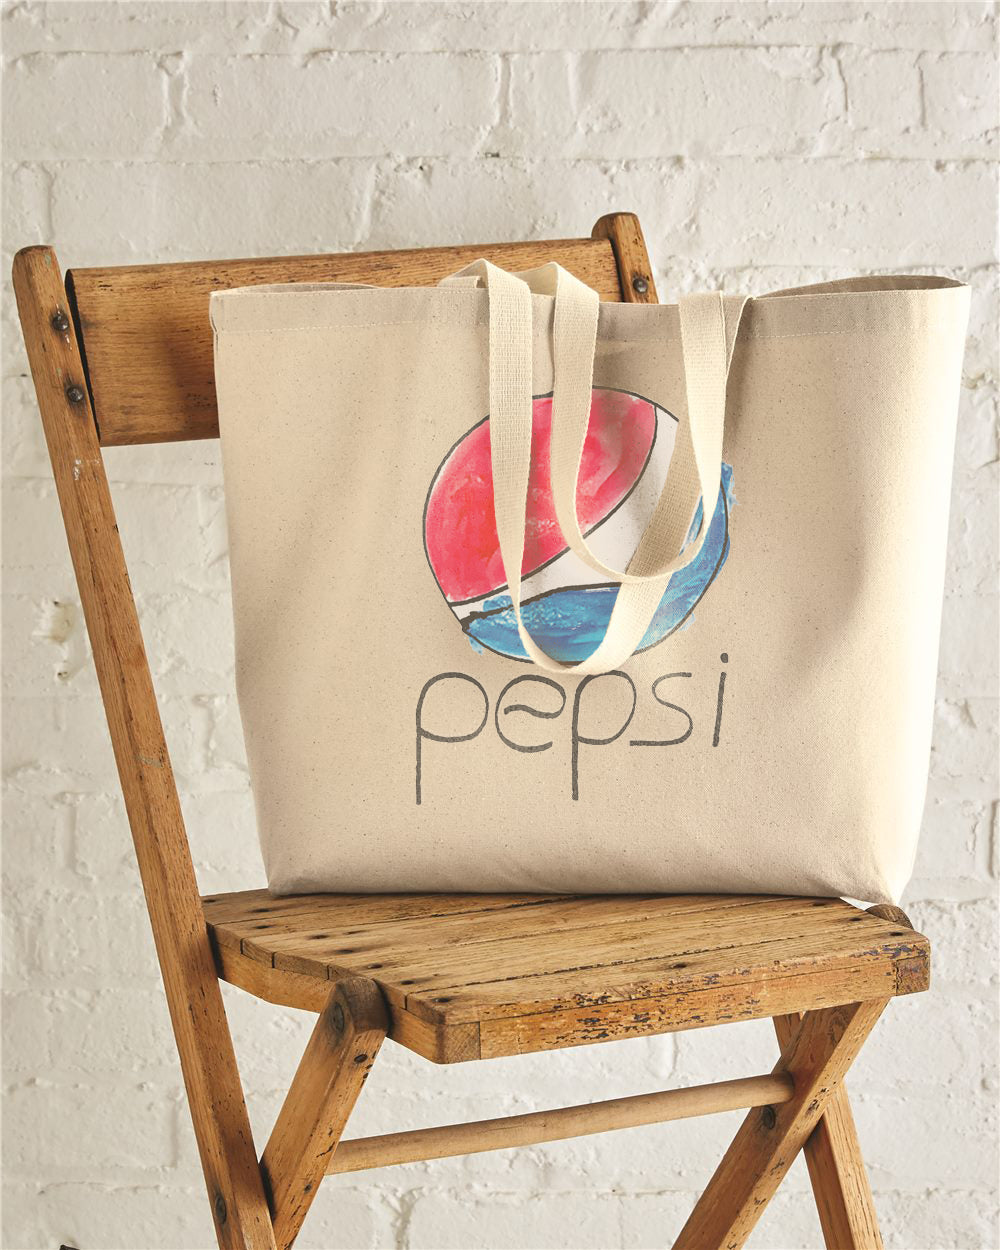 PEPSI Jumbo Cotton Canvas Tote Bag